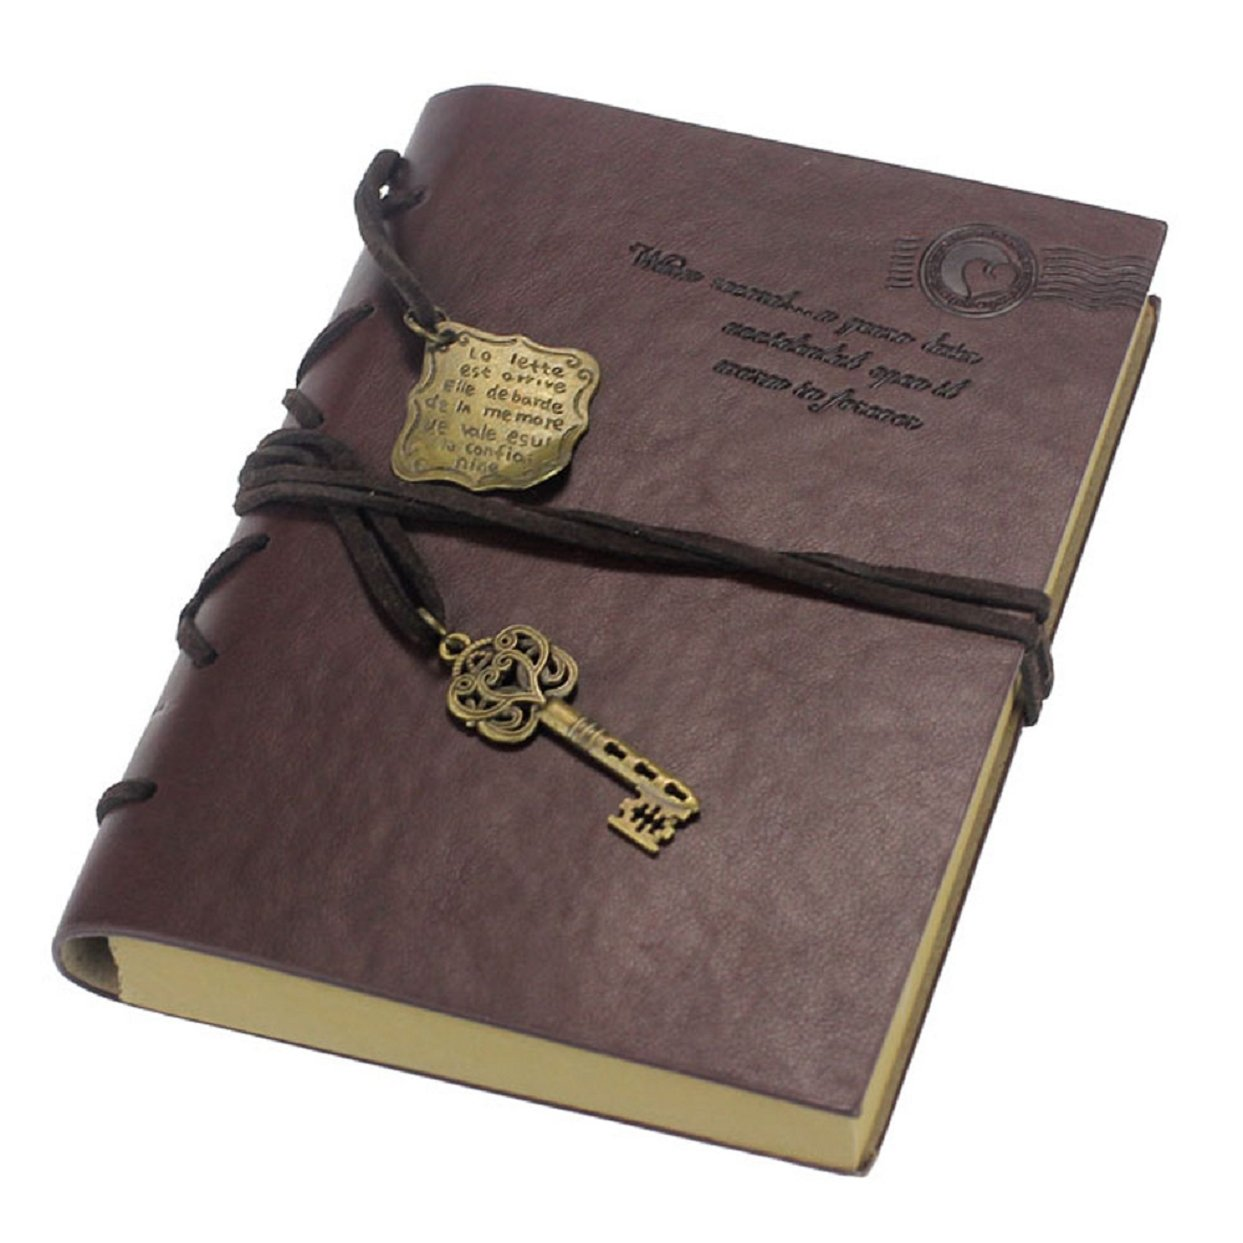 New Vintage Magic Key String Retro Leather Note Book Diary Notebook Lowpricenice(TM)